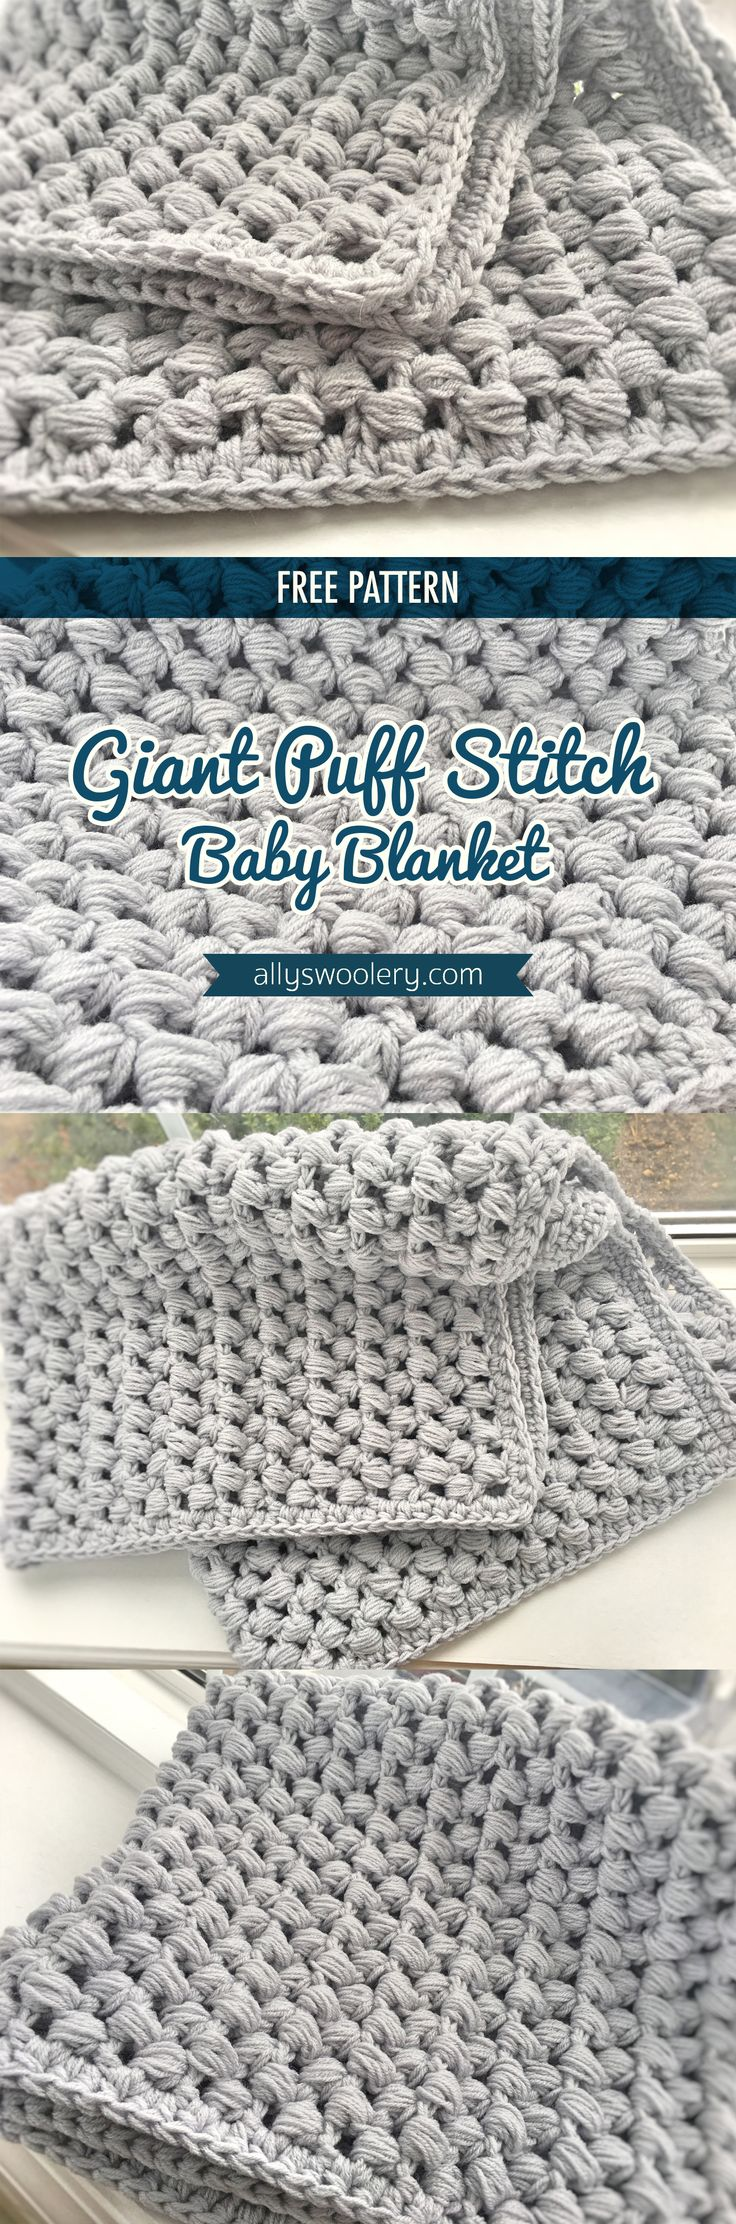 { FREE PATTERN } Giant Puff Stitch Baby Blanket from Ally's Woolery